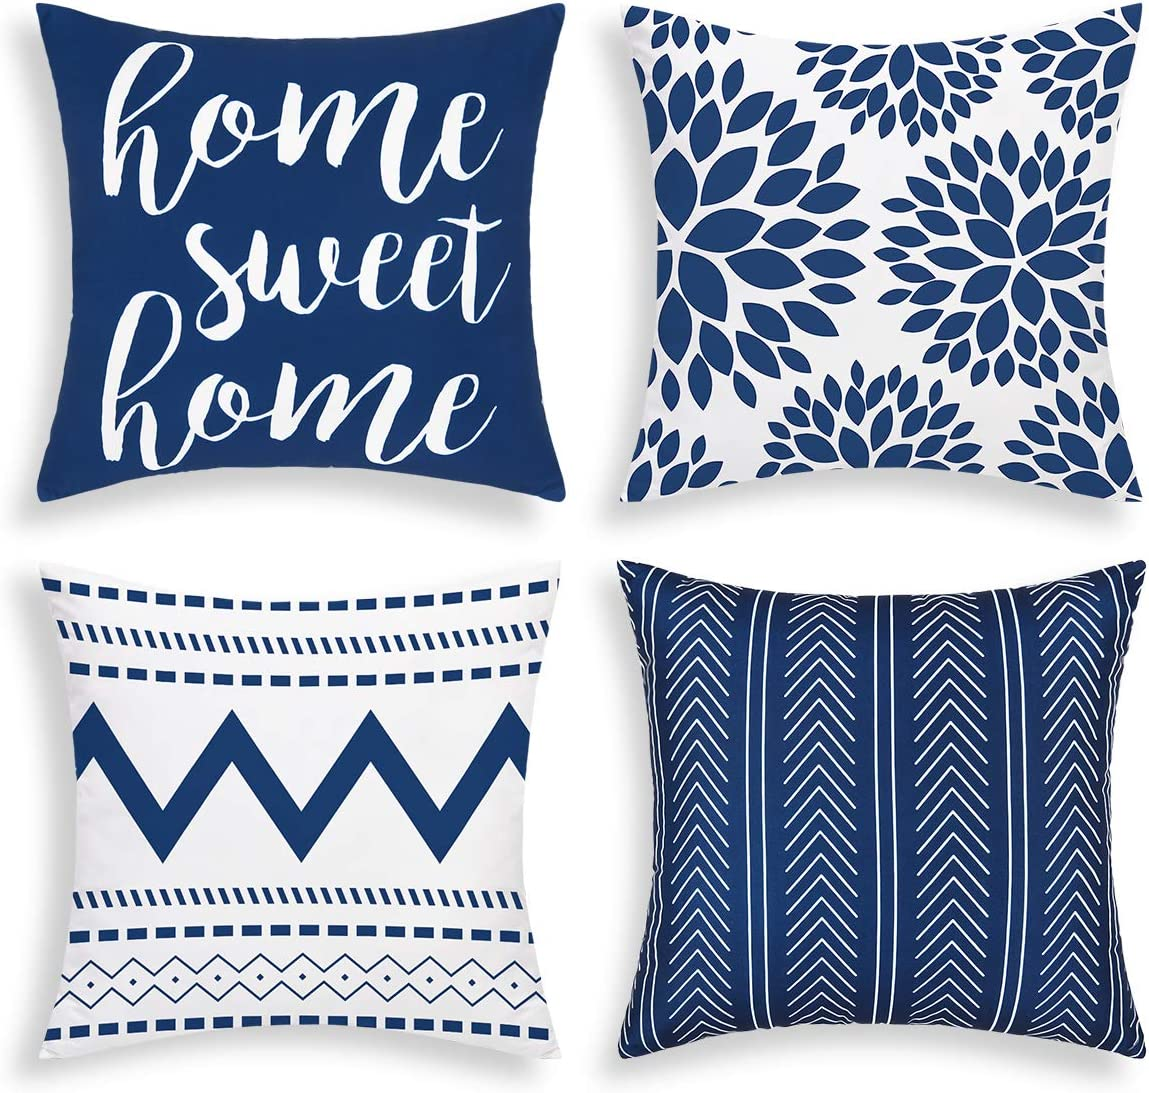 Yastouay Geometric Throw Pillow Covers Set of 4 Modern Decorative Pillowcases Home Sweet Home Pillow Covers Outdoor Cushion Covers for Couch Sofa Bedroom(Blue, 18 x 18 Inch)